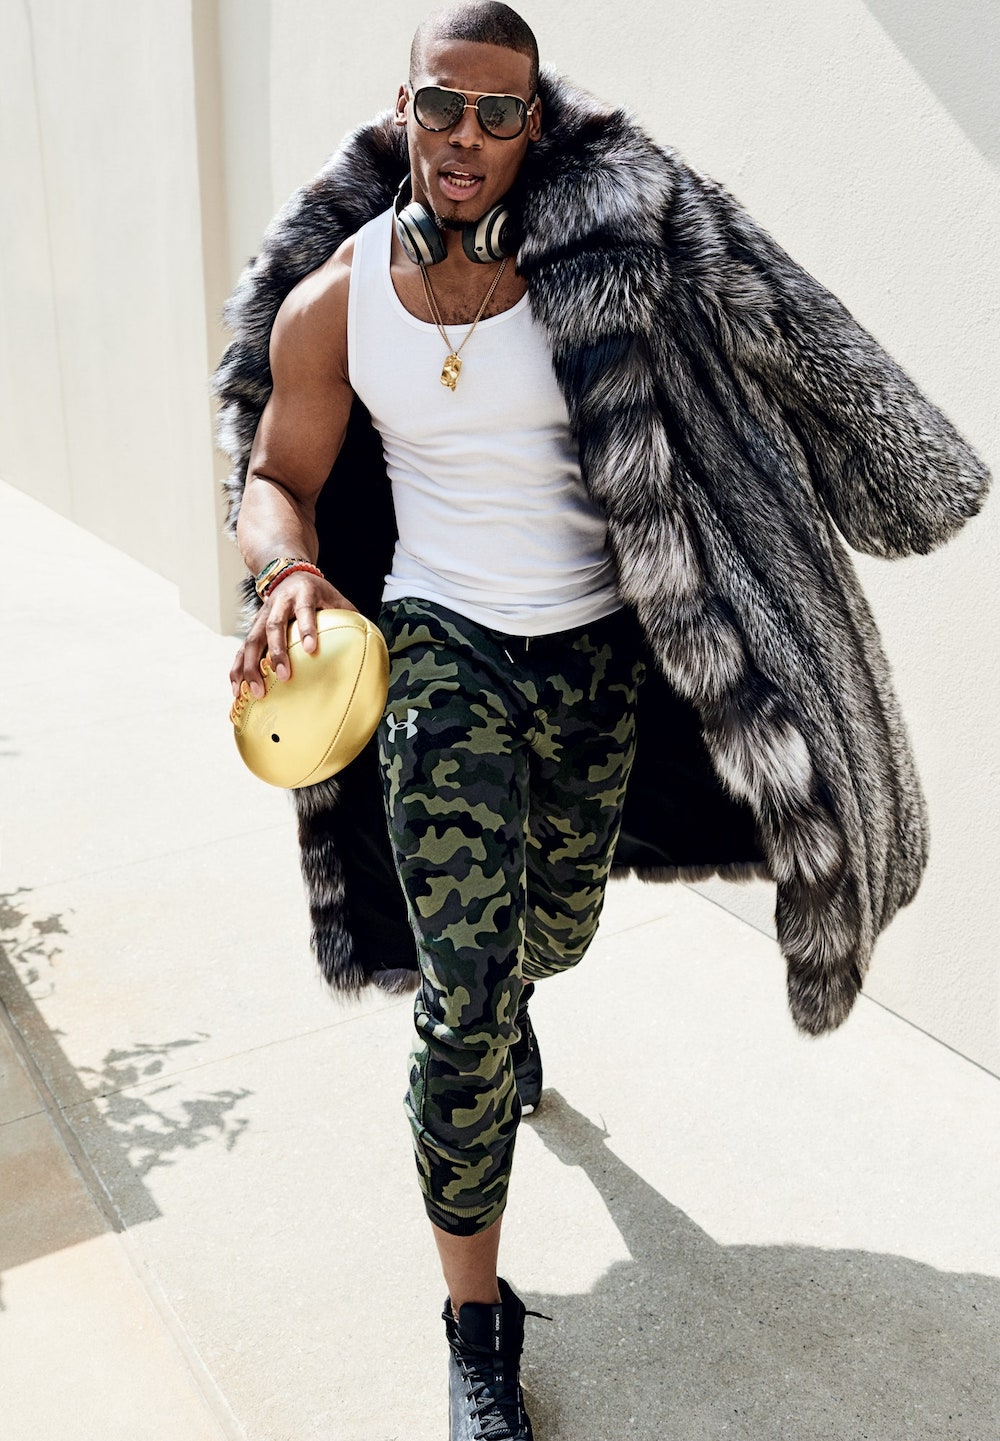 Cam Newton's outstanding fur coat look. An excellent example of a great men's outfit